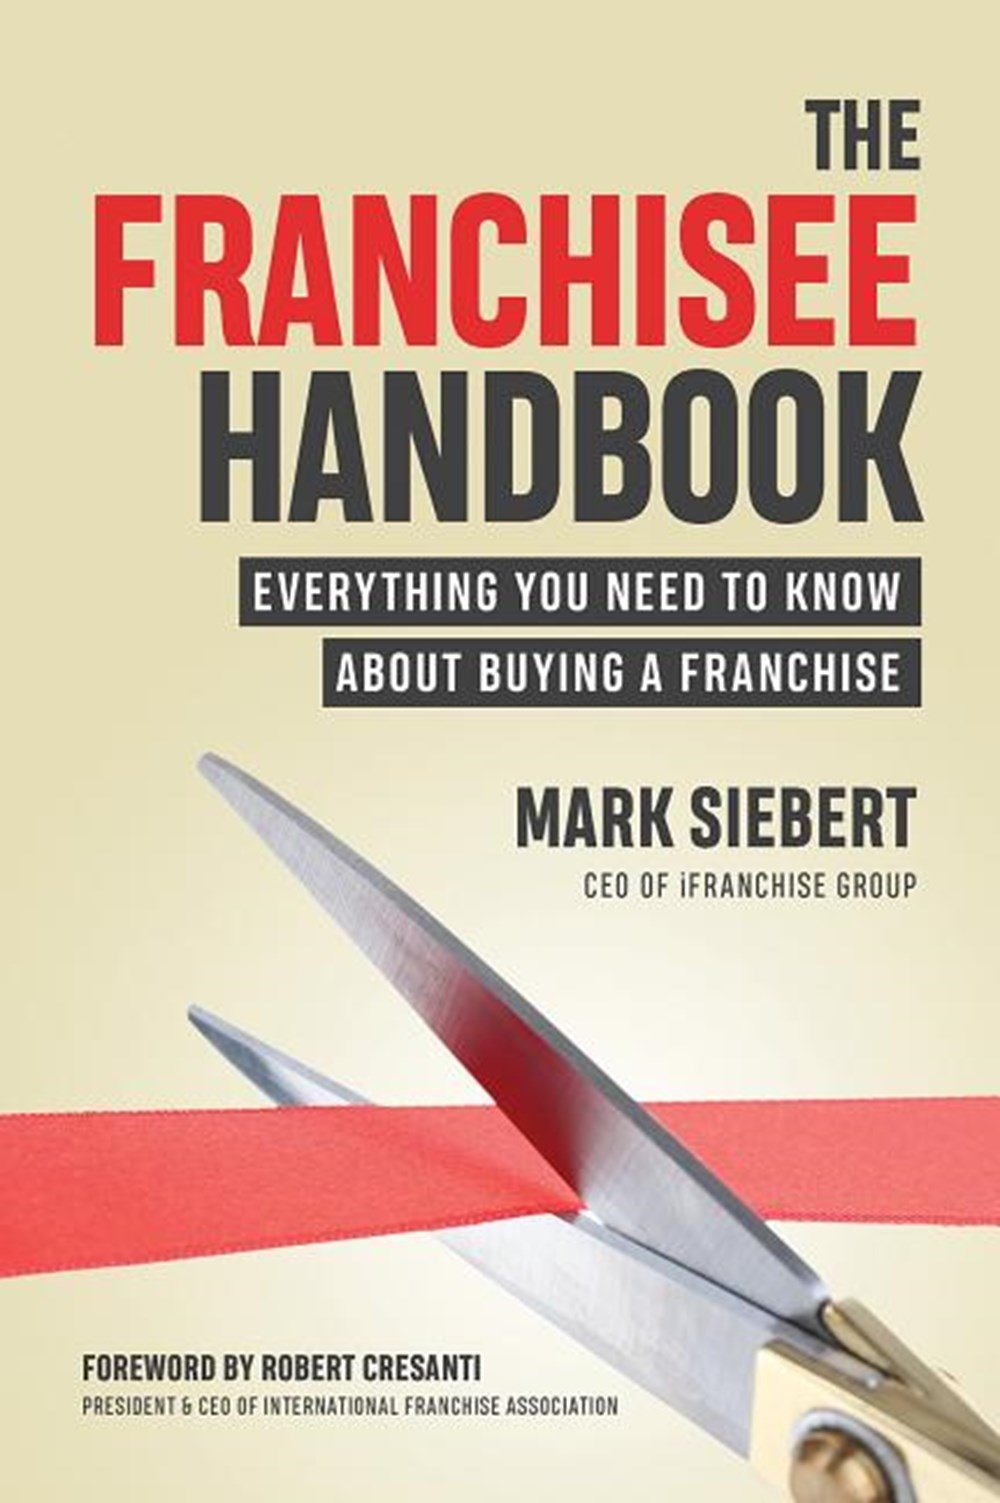 Franchisee Handbook: Everything You Need to Know about Buying a Franchise